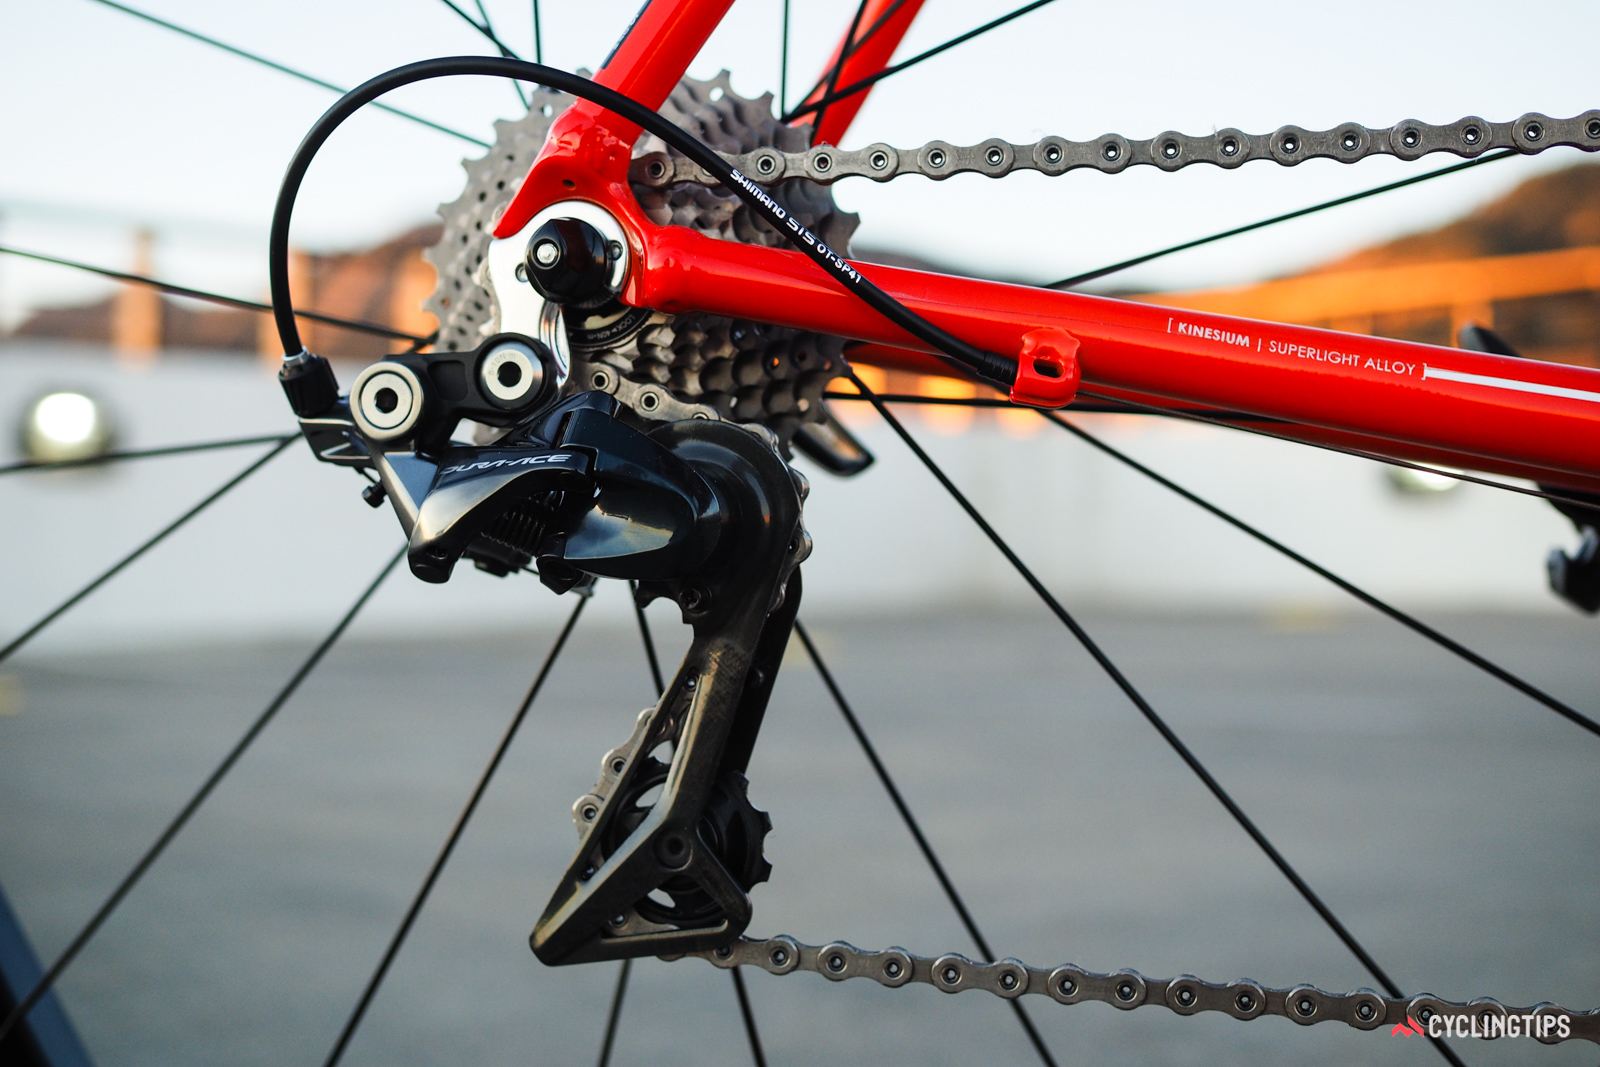 The upper pulley is concentric with the cage pivot, thus maintaining a consistent chain gap regardless of chainring or rear sprocket position. The upper pivot is no longer spring loaded, either, switching to an adjustable stationary position similar to what Shimano does on its mountain bike rear derailleurs.